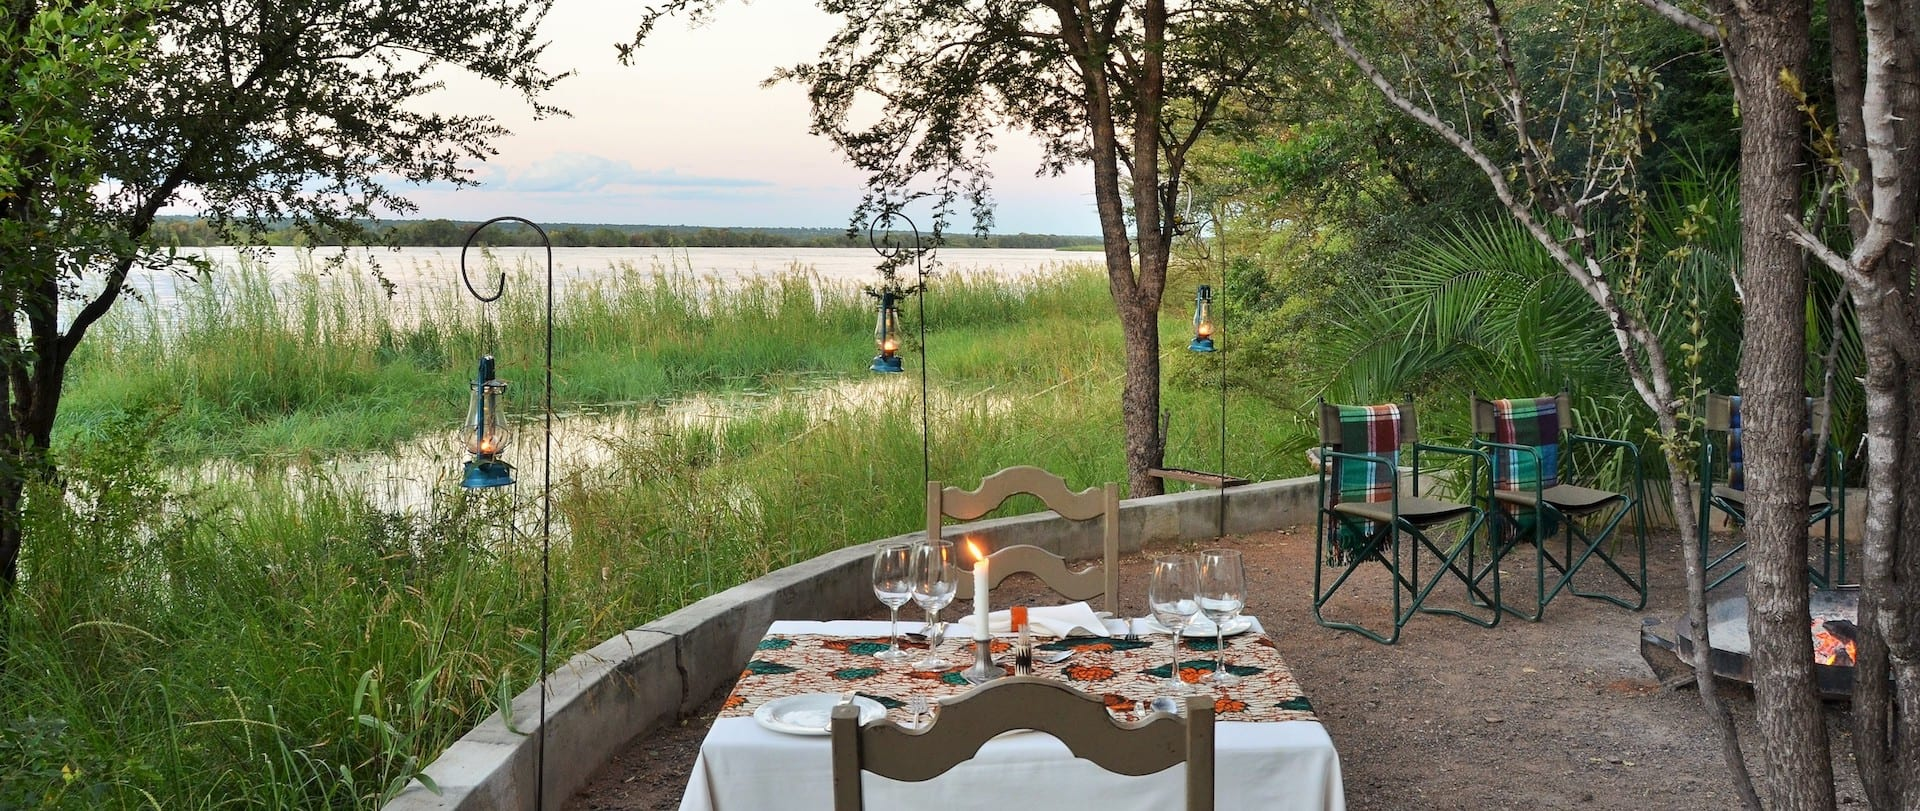 ALGEMEEN - Chobe Bakwena - high_water_from_the_boma